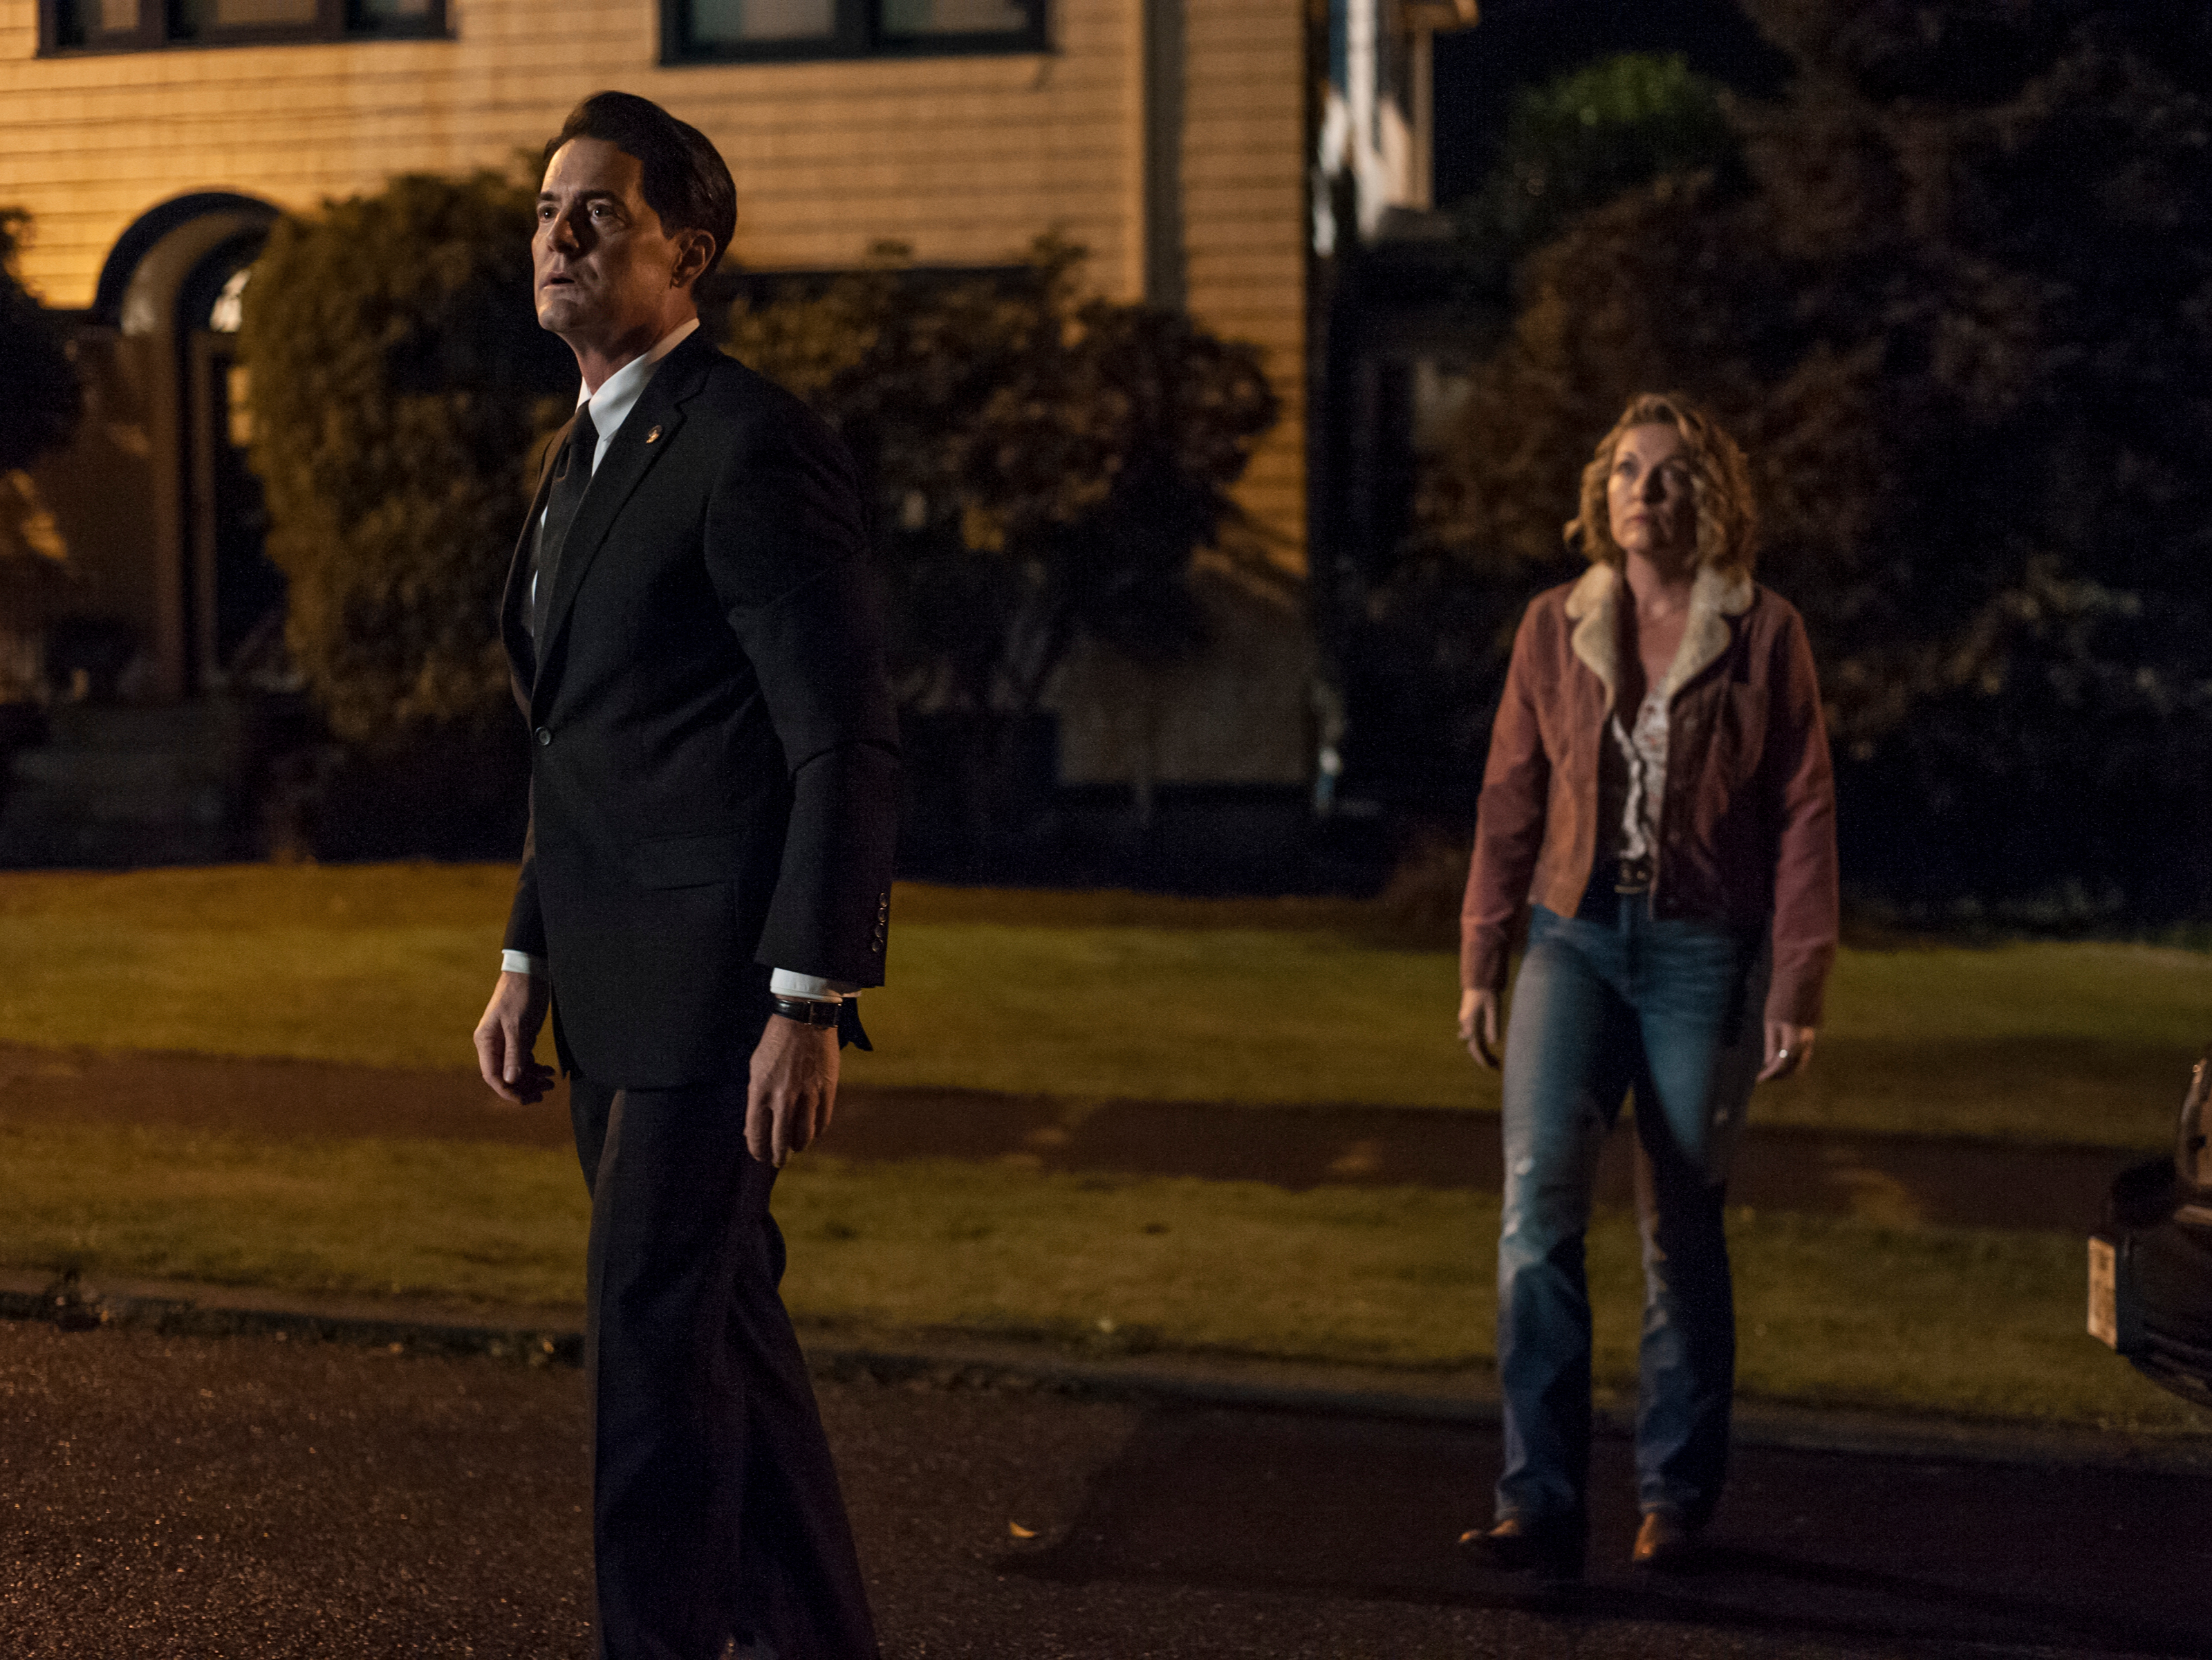 'What year is this?': The haunting conclusion of 'Twin Peaks' proved too bleak and nebulous for many viewers